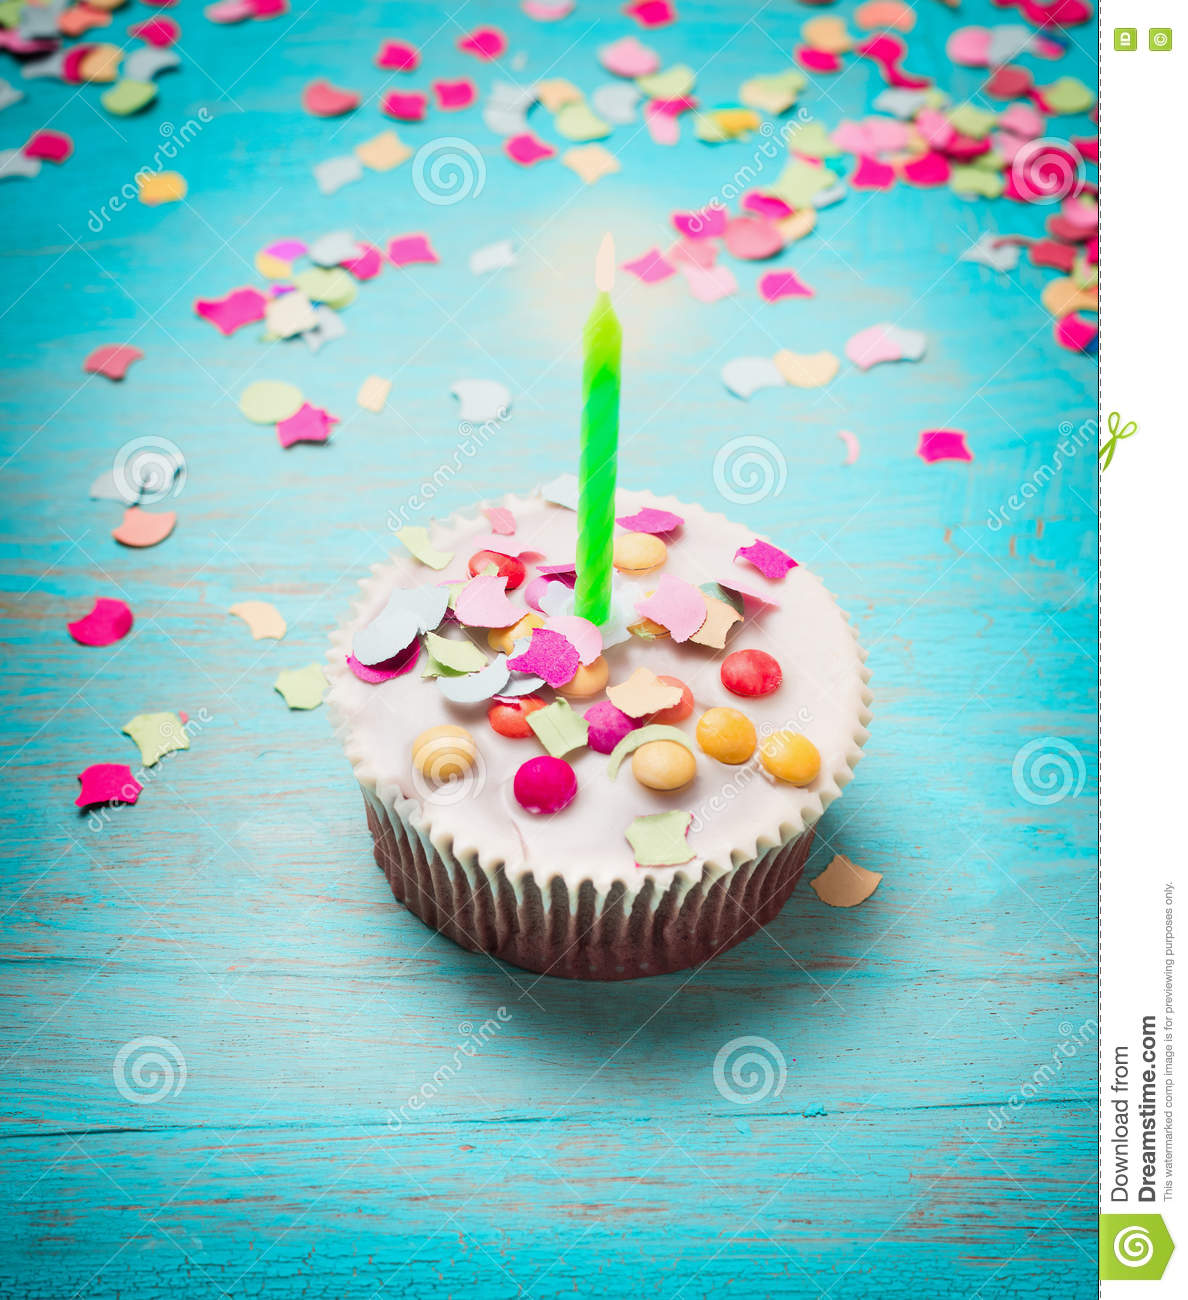 Birthday Cake With Green Candle And Pink Confetti On Turquoise Blue